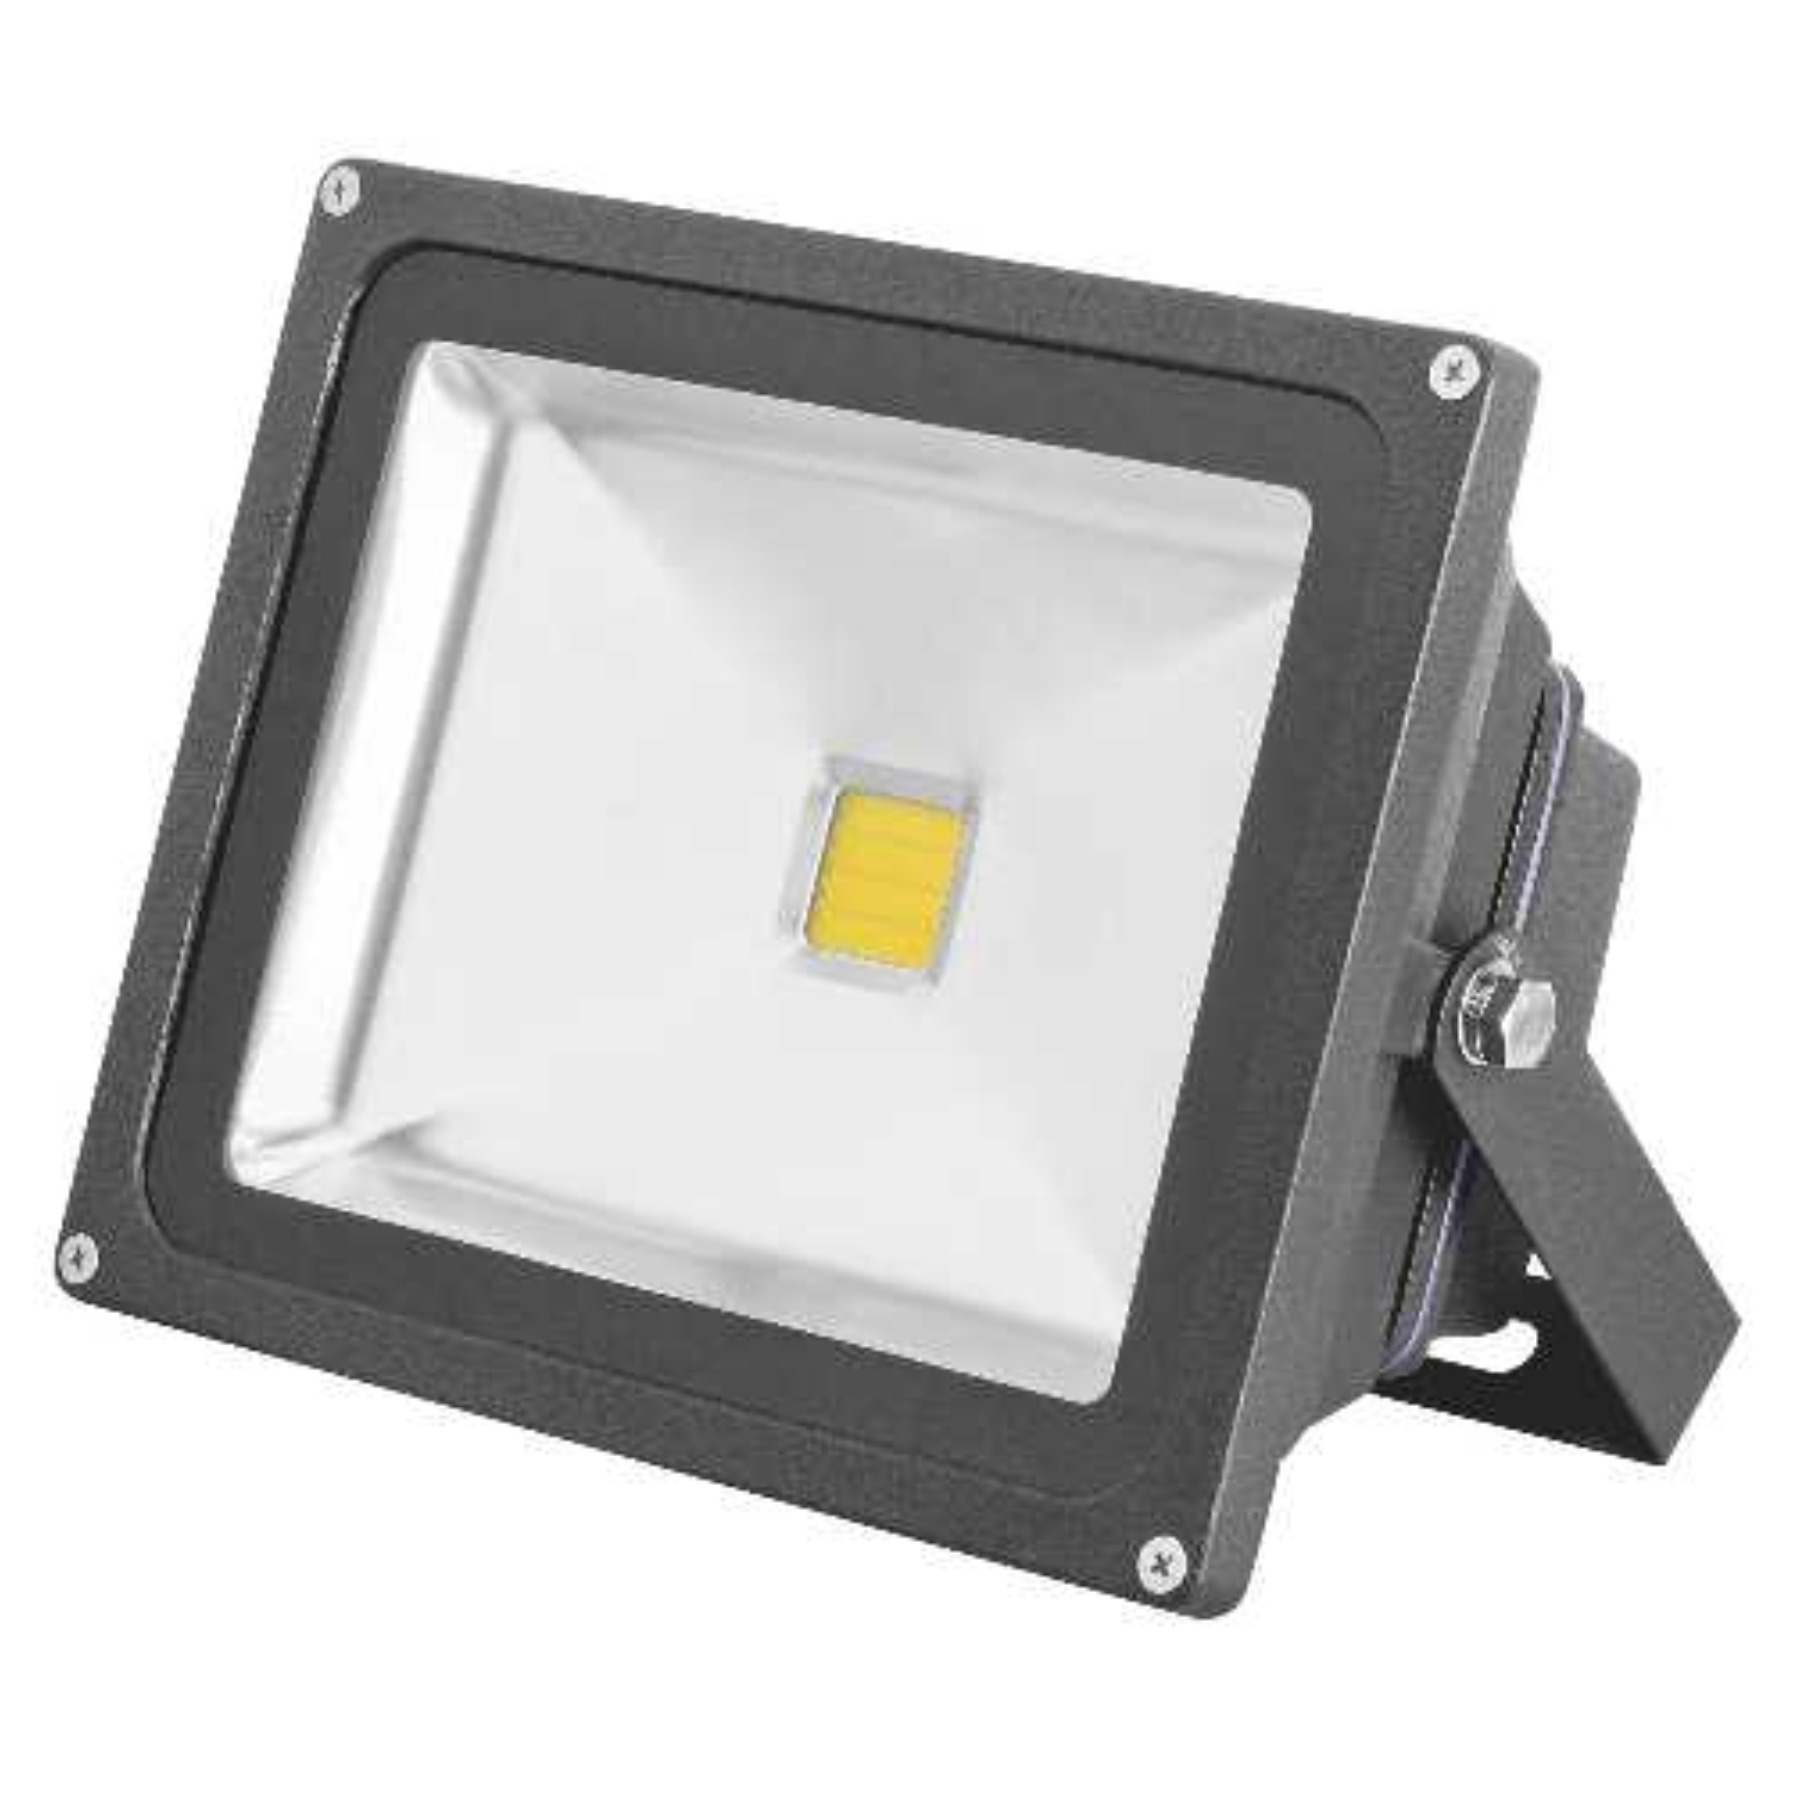 MONUMENT LED FLOODLIGHT WITH ALUMINUM HOUSING, BRONZE, 3-3/8X4-1/2X2-15/16 IN., 1 30-WATT LAMP (INCLUDED)